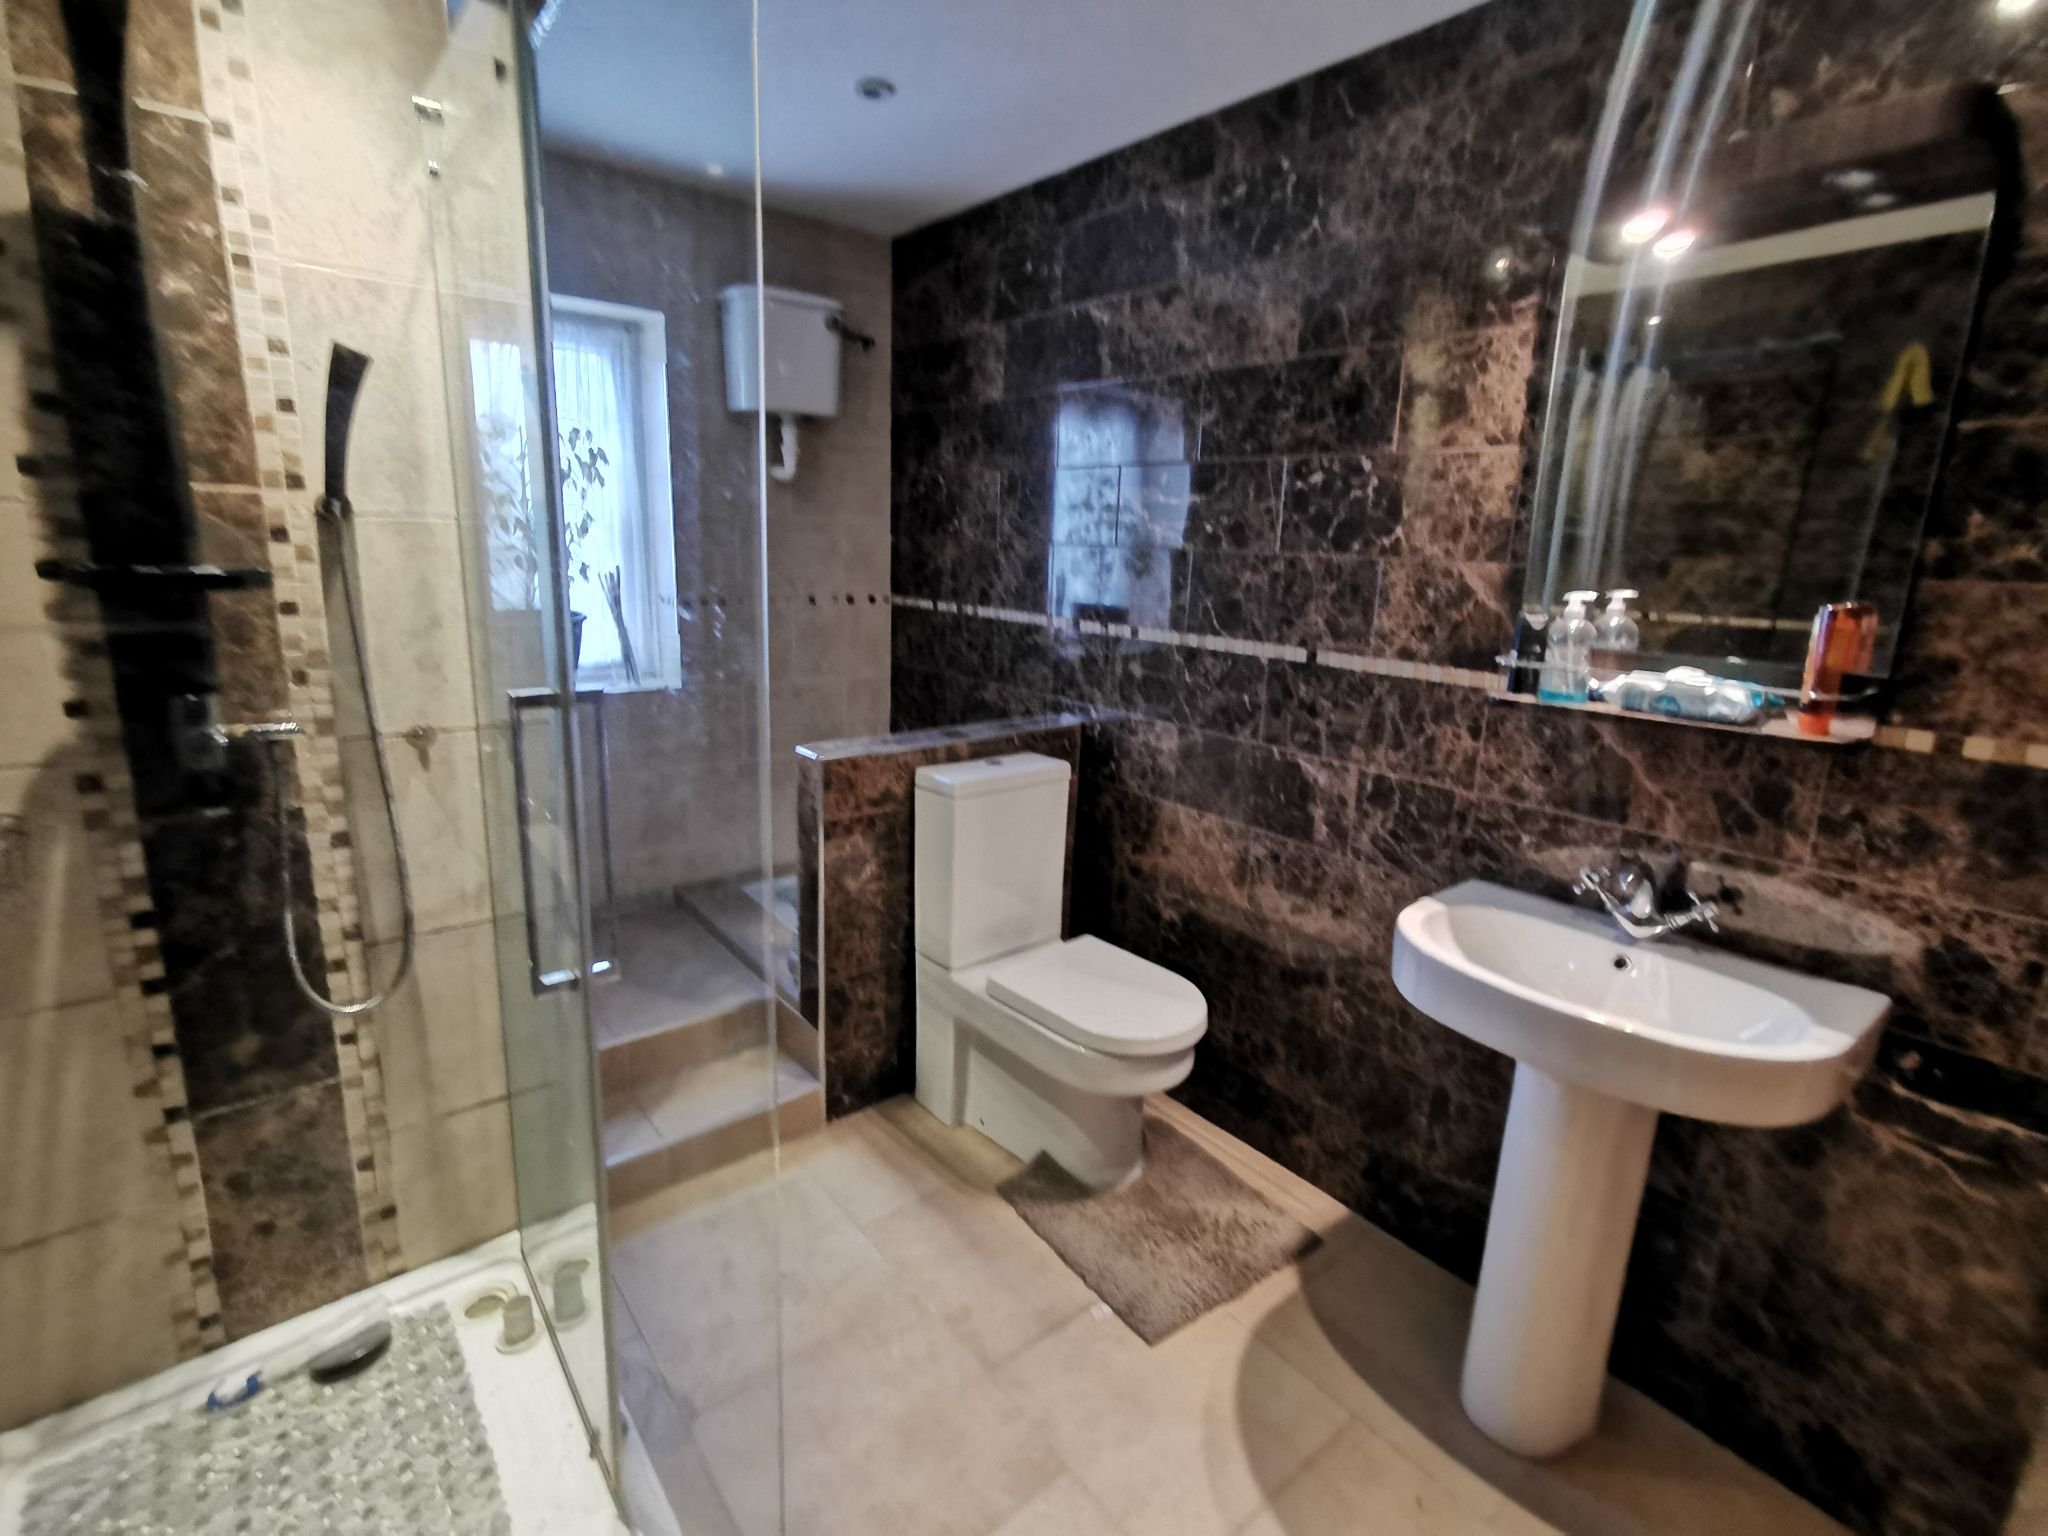 6 bedroom detached bungalow For Sale in Bradford - Photograph 16.